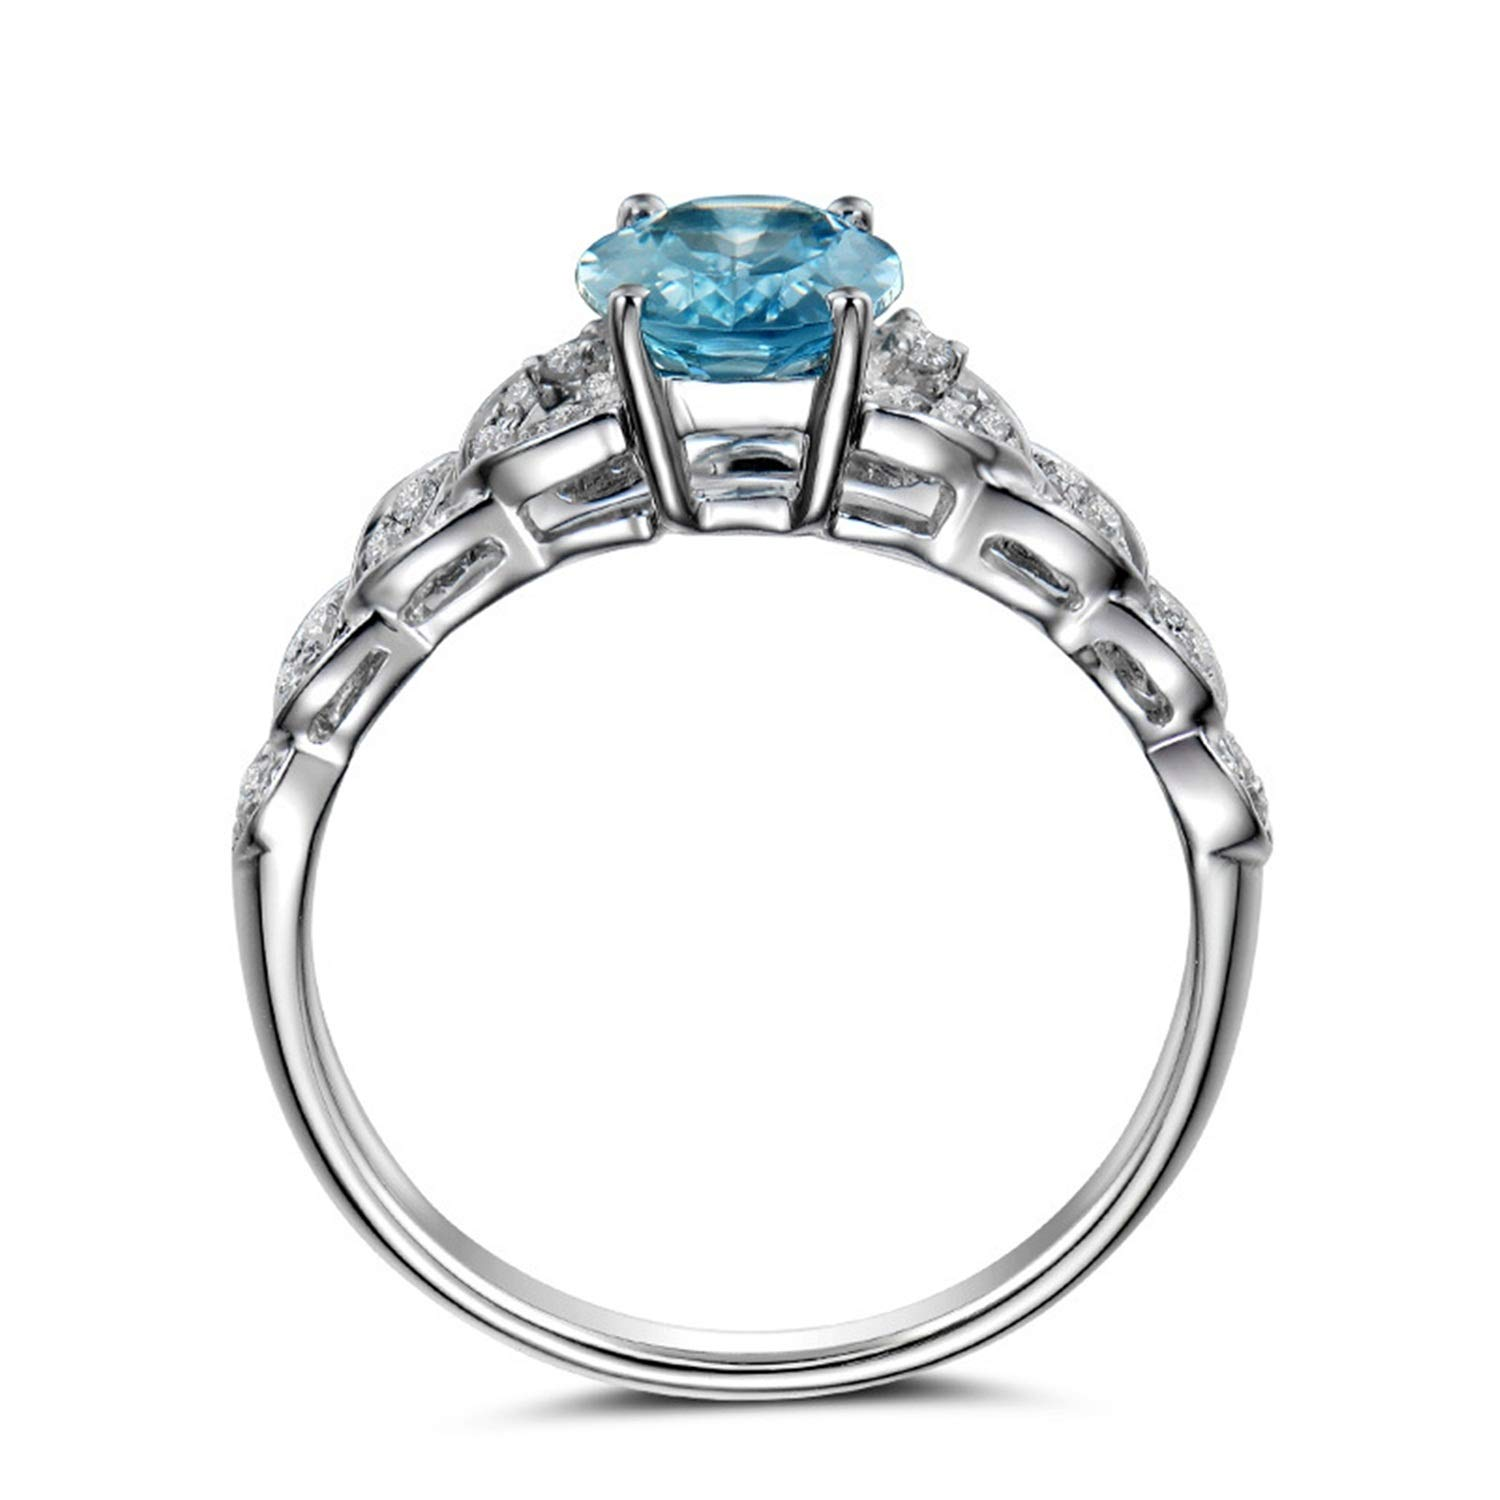 AMDXD Jewellery 925 Sterling Silver Anniversary Ring for Womens Blue Oval Cut Topaz Round Rings